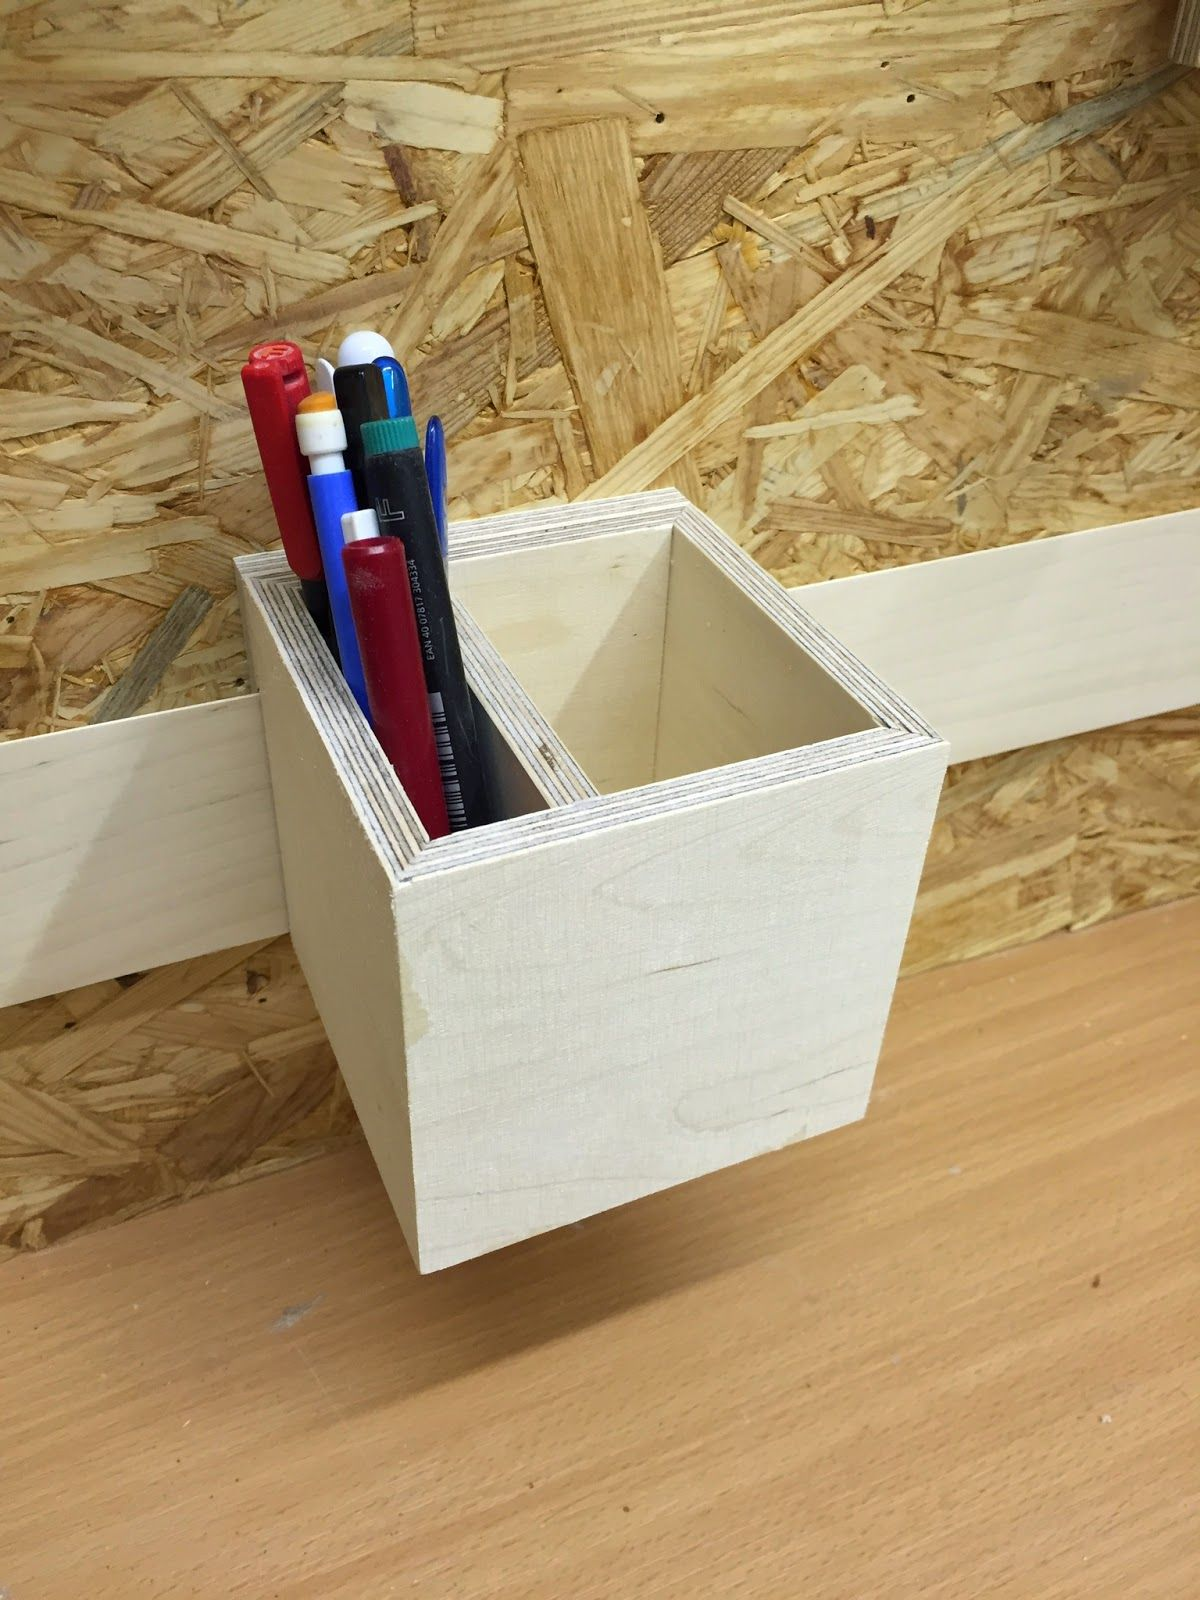 Photo of HolzwurmTom.de: French cleat hanging system for hand tools